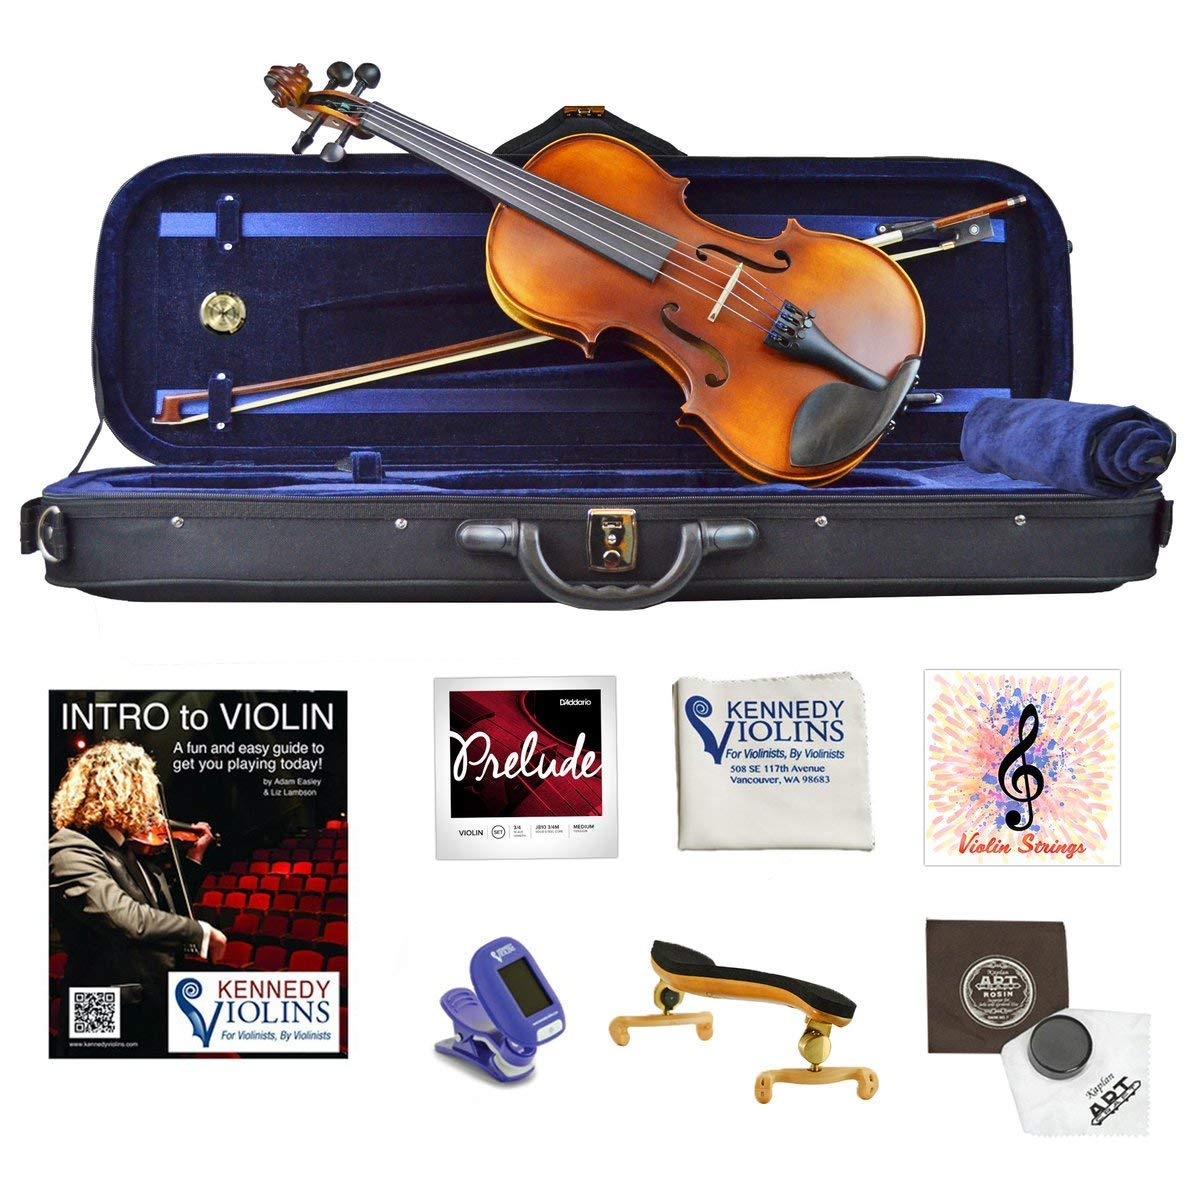 Ricard Bunnel G1 Clearance Student Violin Outfit (4/4) RB560 by Kennedy Violins